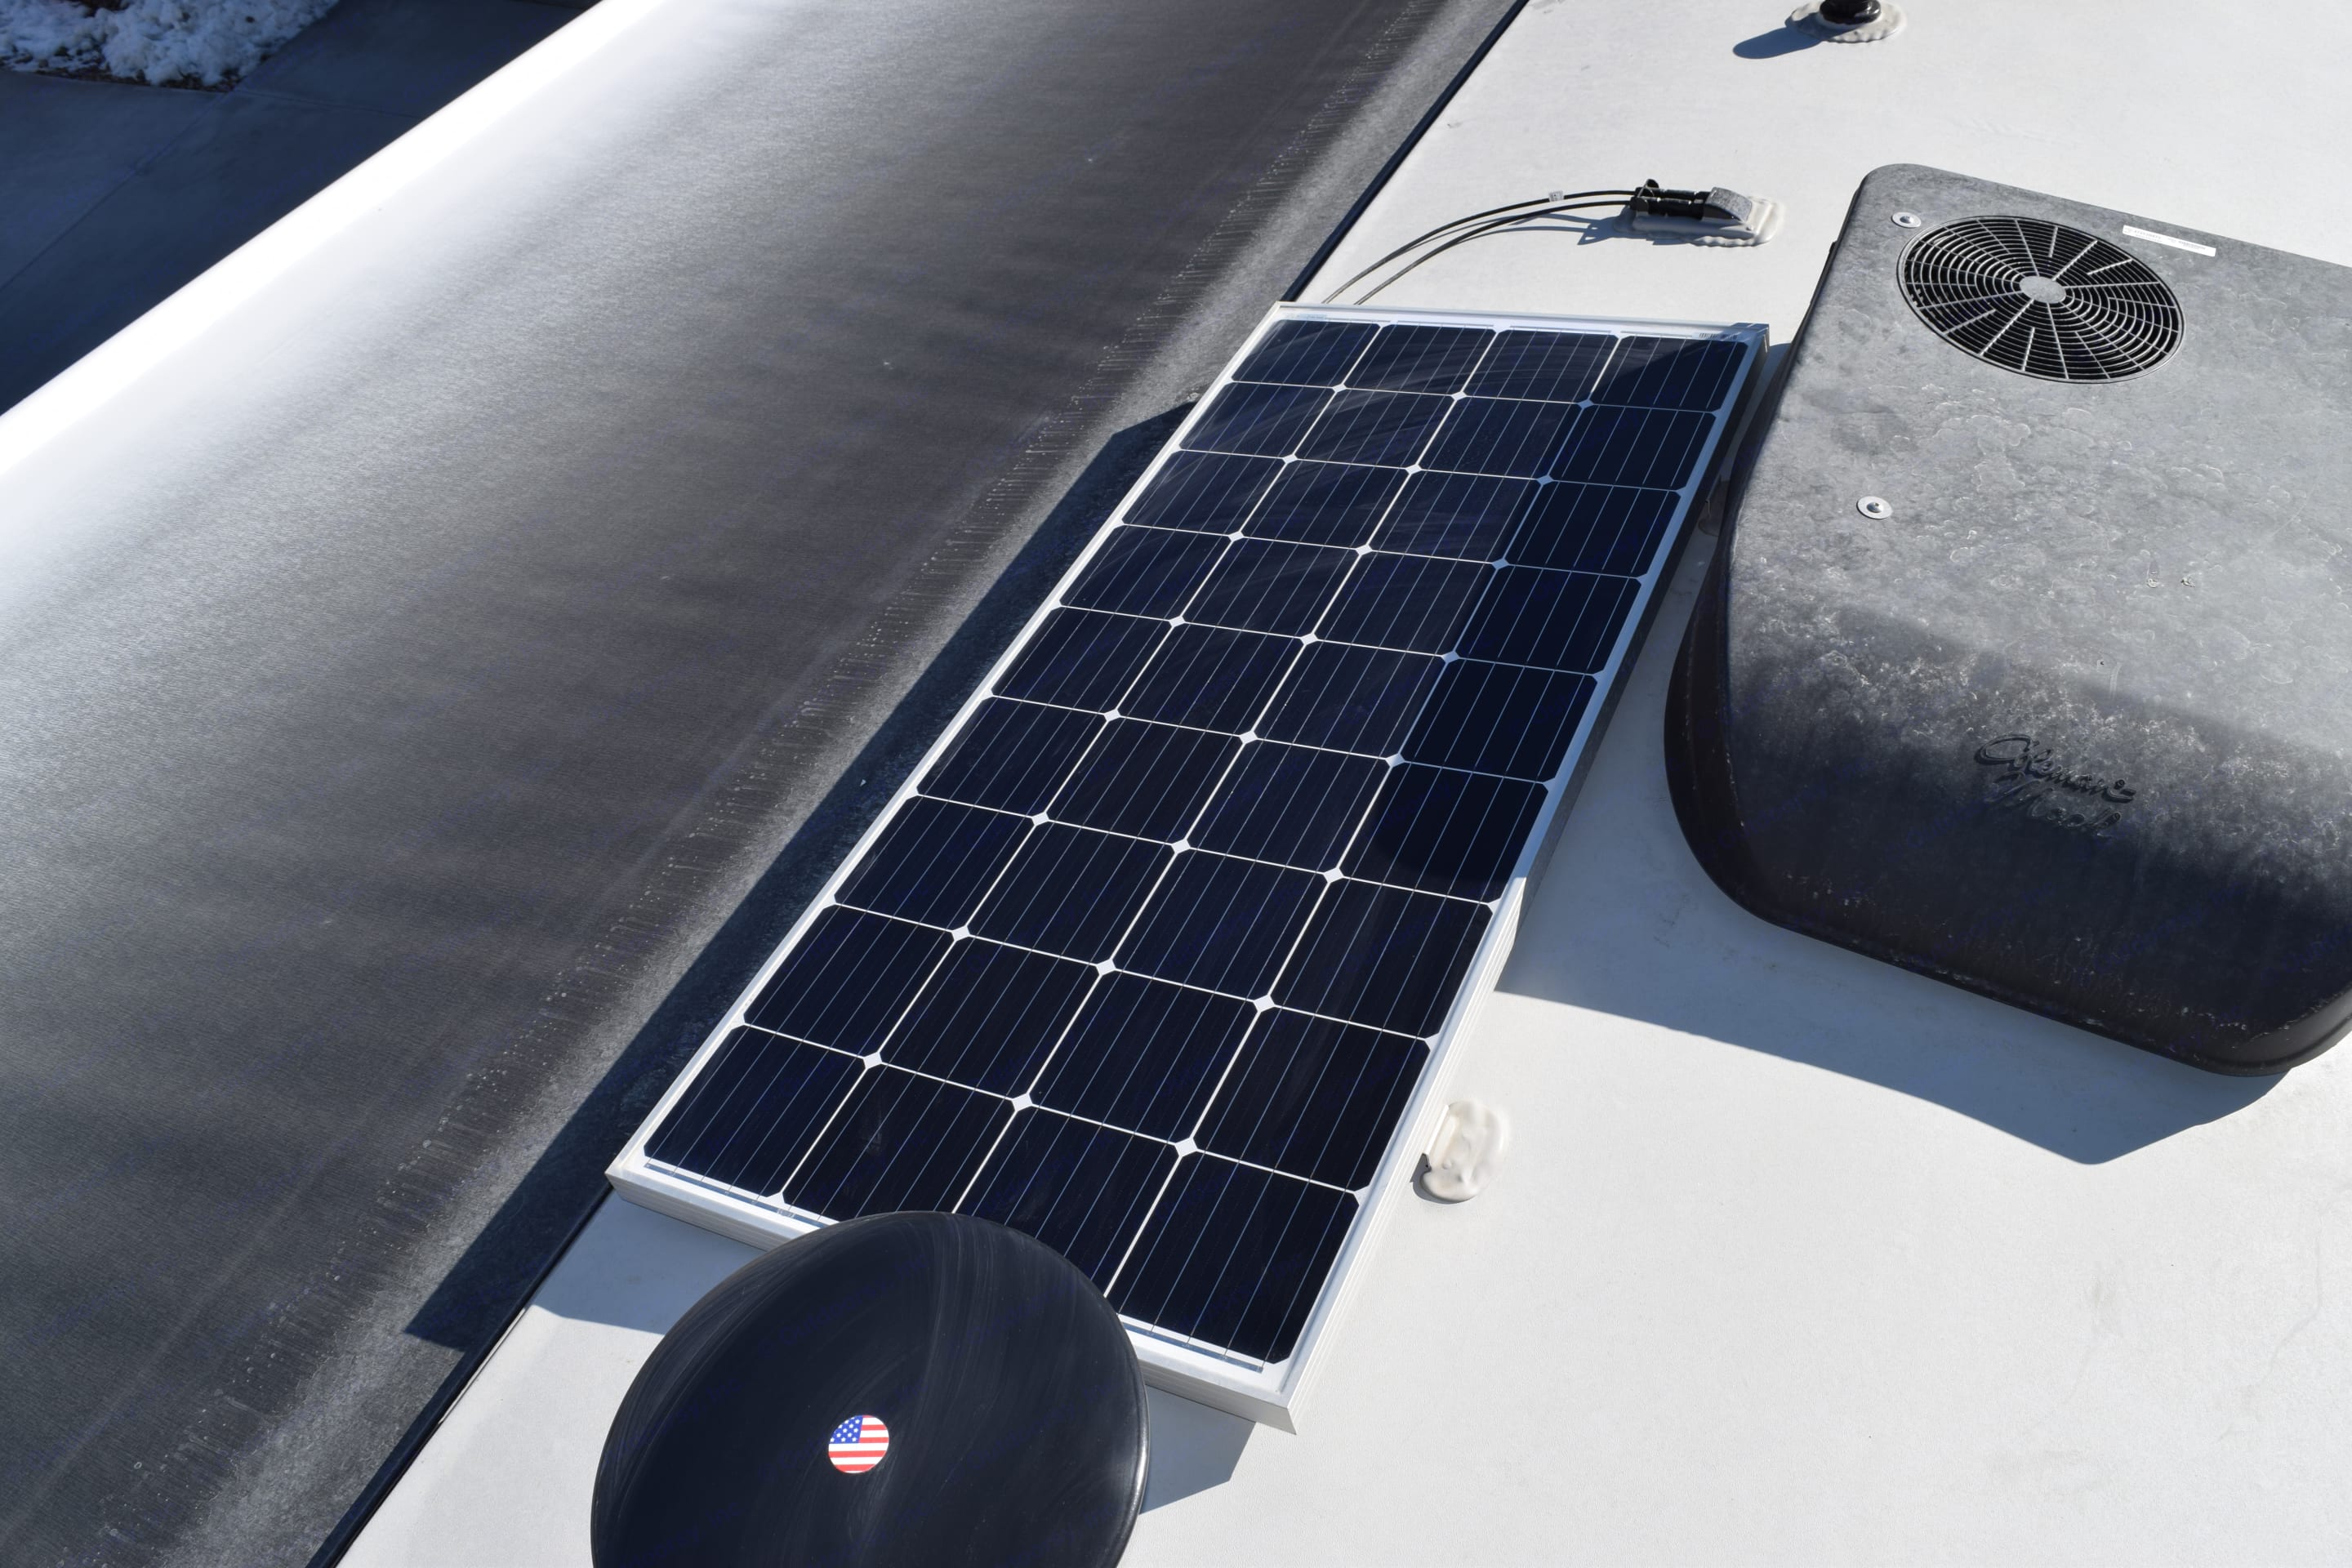 200w roof-mounted solar allows you to keep recharging the batteries while dry camping. Forest River Rockwood 2021